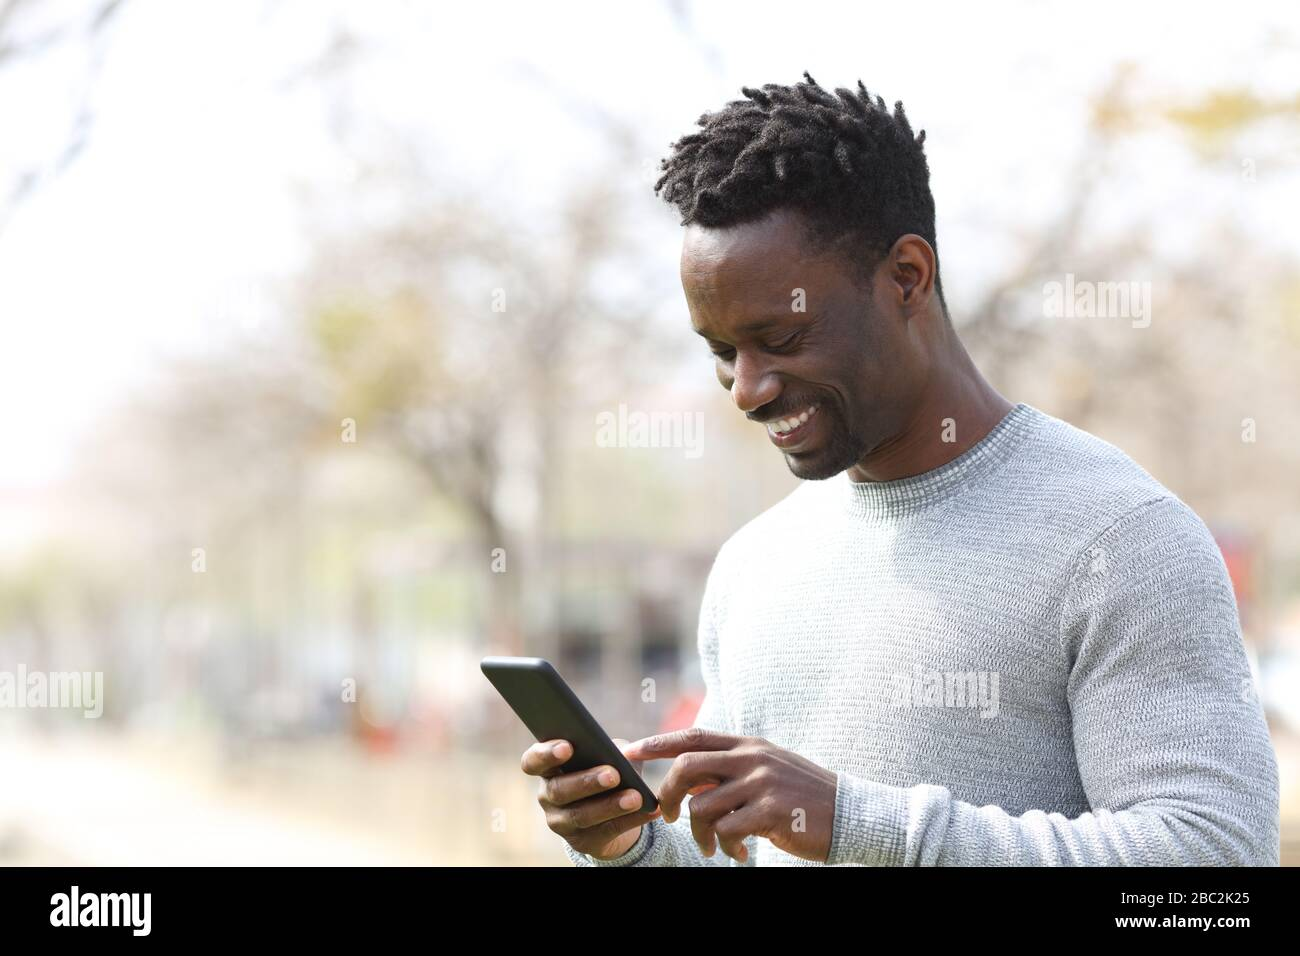 Happy black man using smart phone walking in a park a sunny day Stock Photo